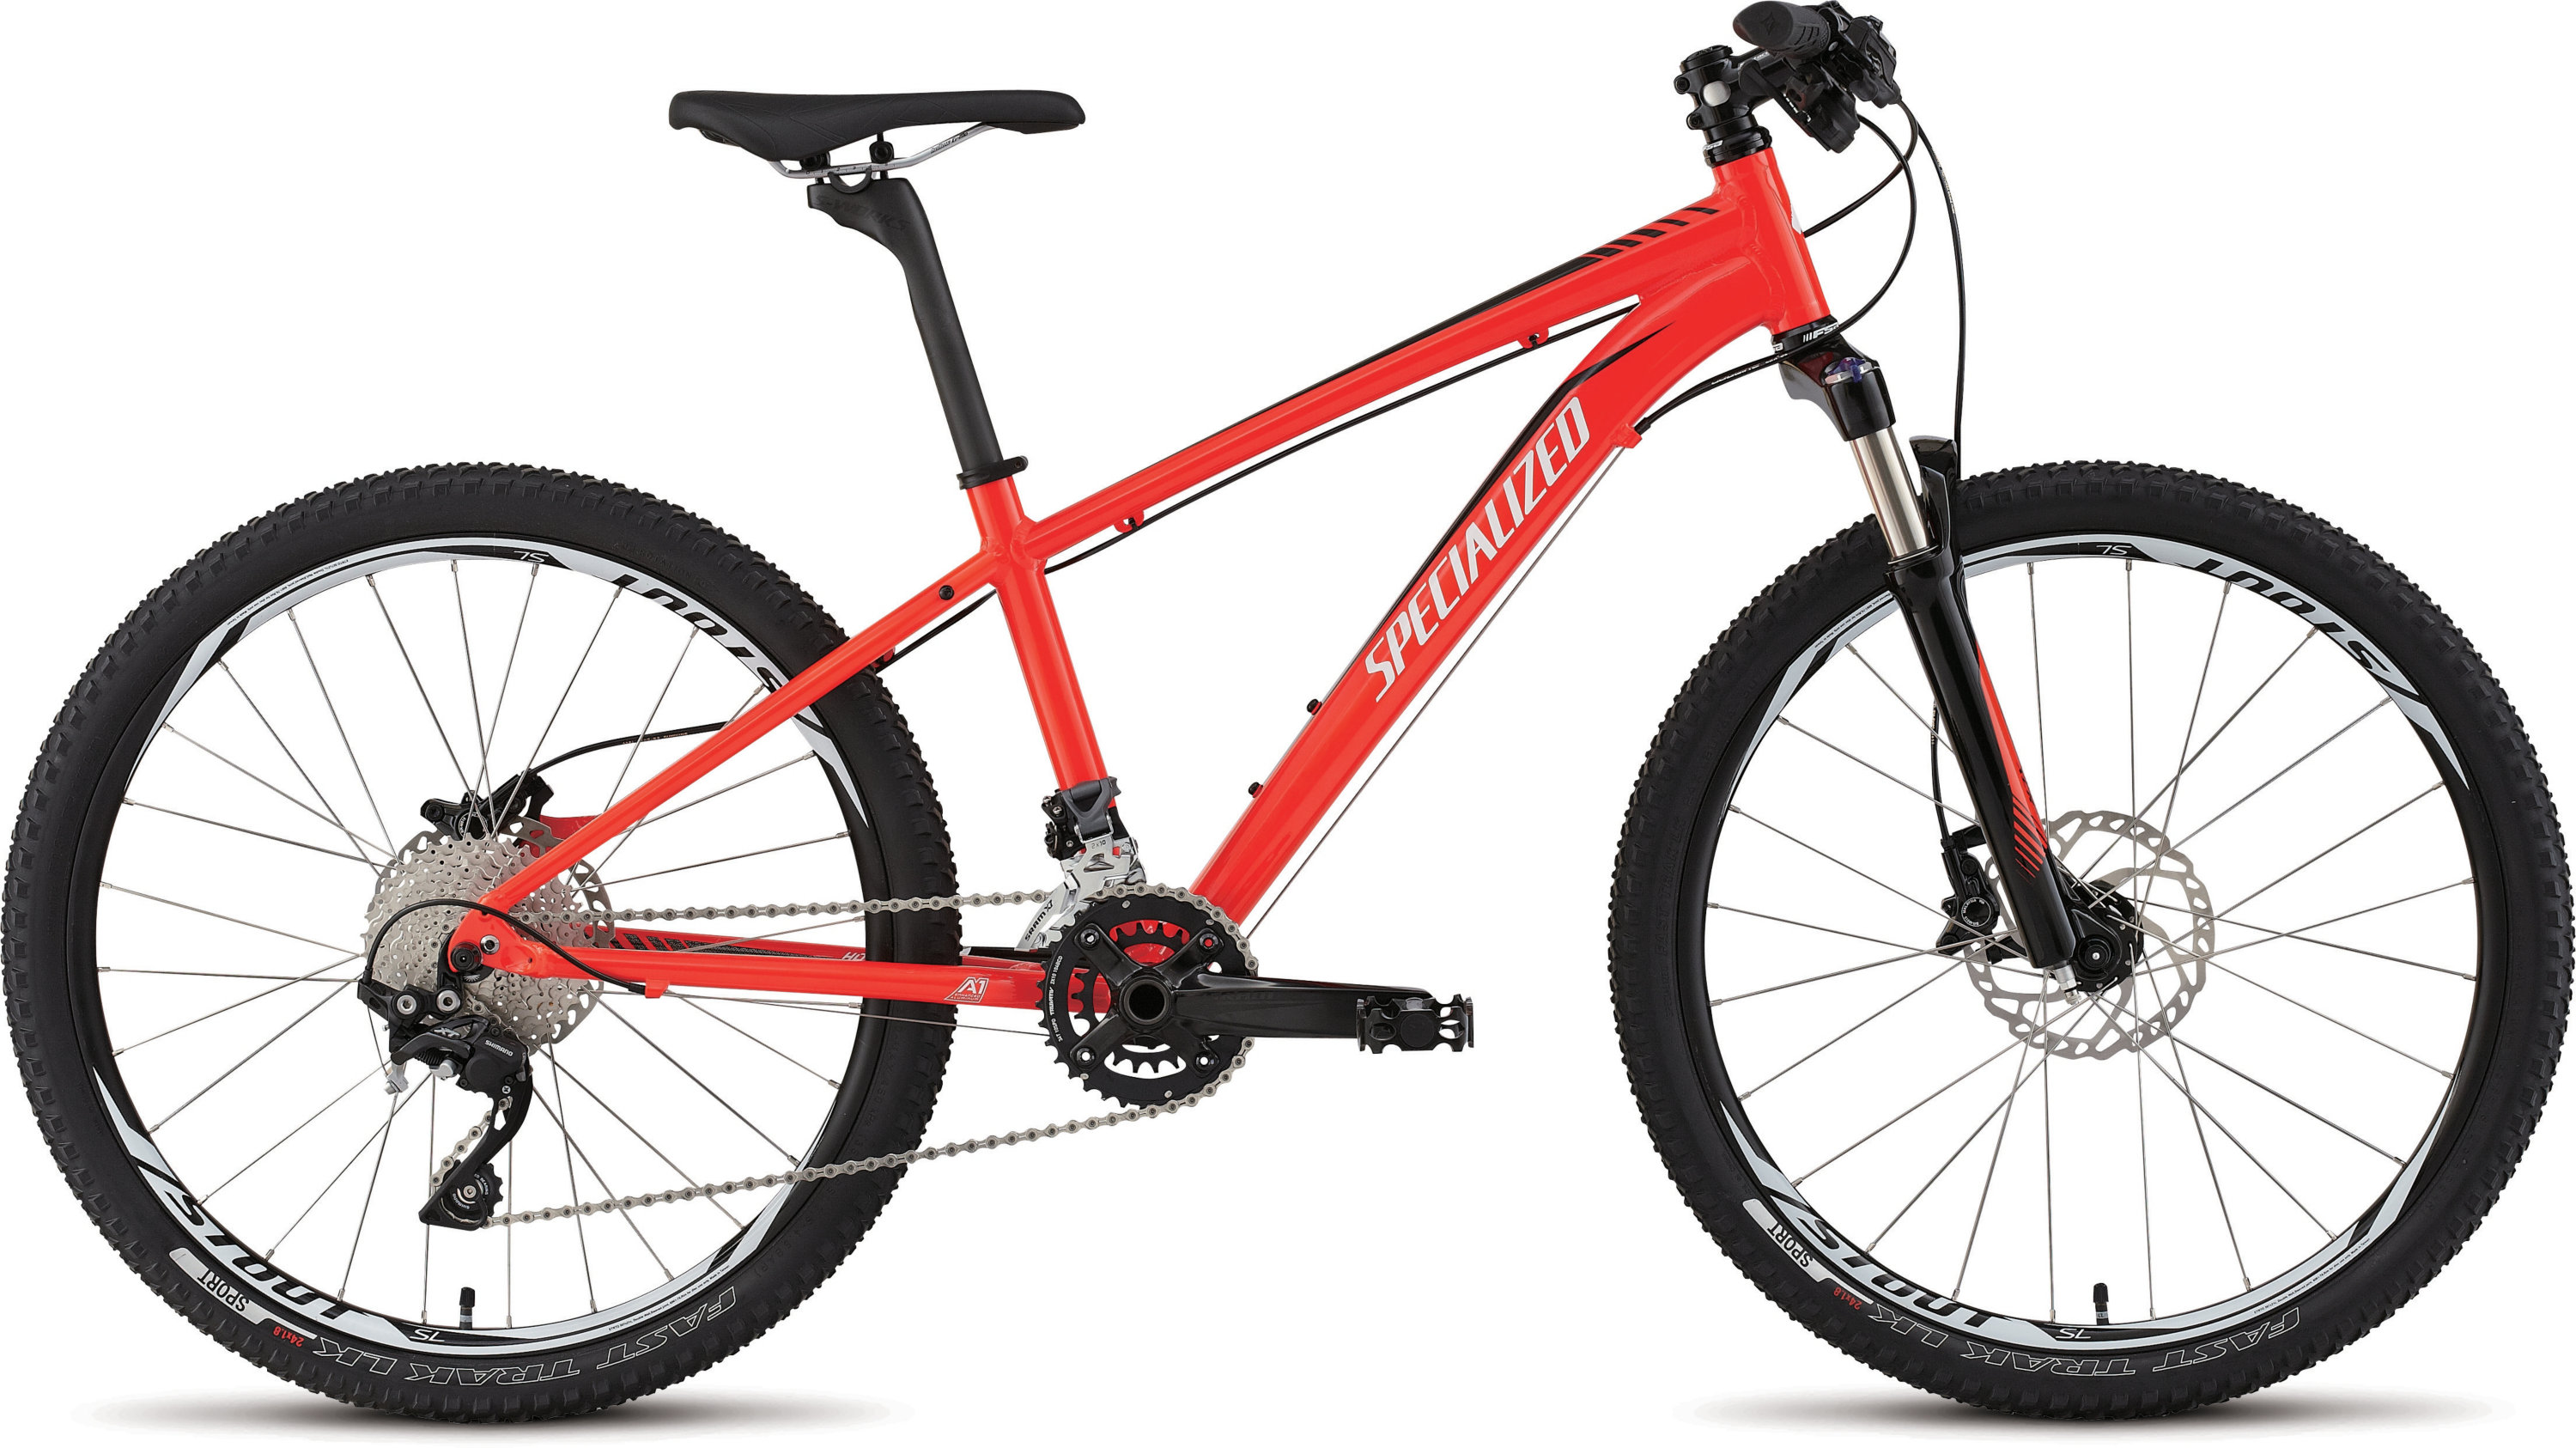 Specialized HOTROCK 24 XC PRO Hotrock 24 Xc Pro Rocket Red/Black/White 13 - Pulsschlag Bike+Sport